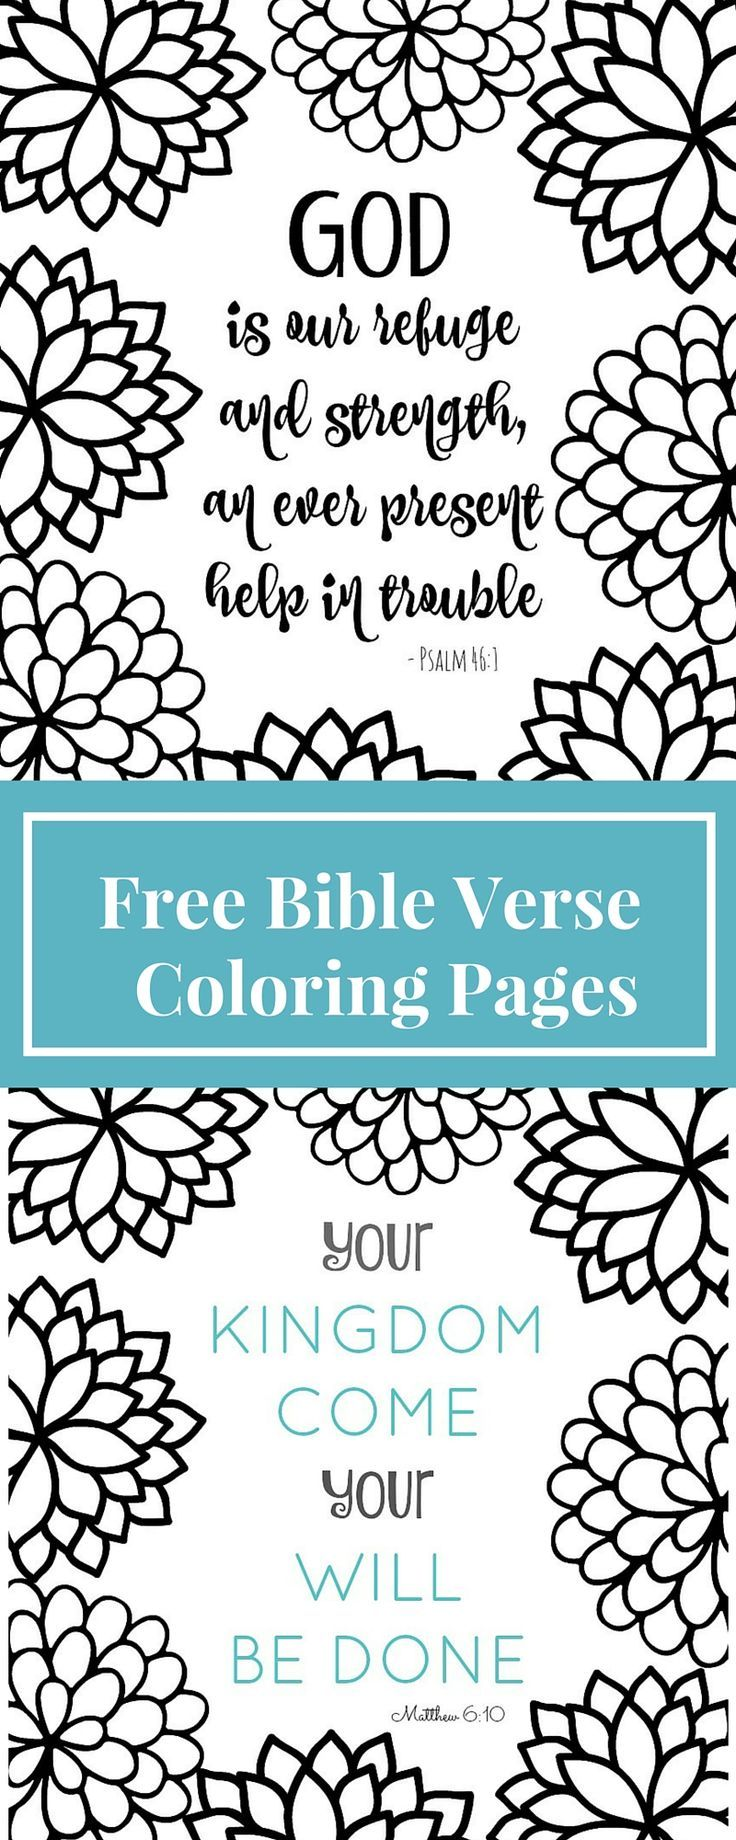 Coloring pages you can color on the computer for adults - Coloring Pages Are For Grown Ups Now These Bible Verse Coloring Page Printables Are Fun